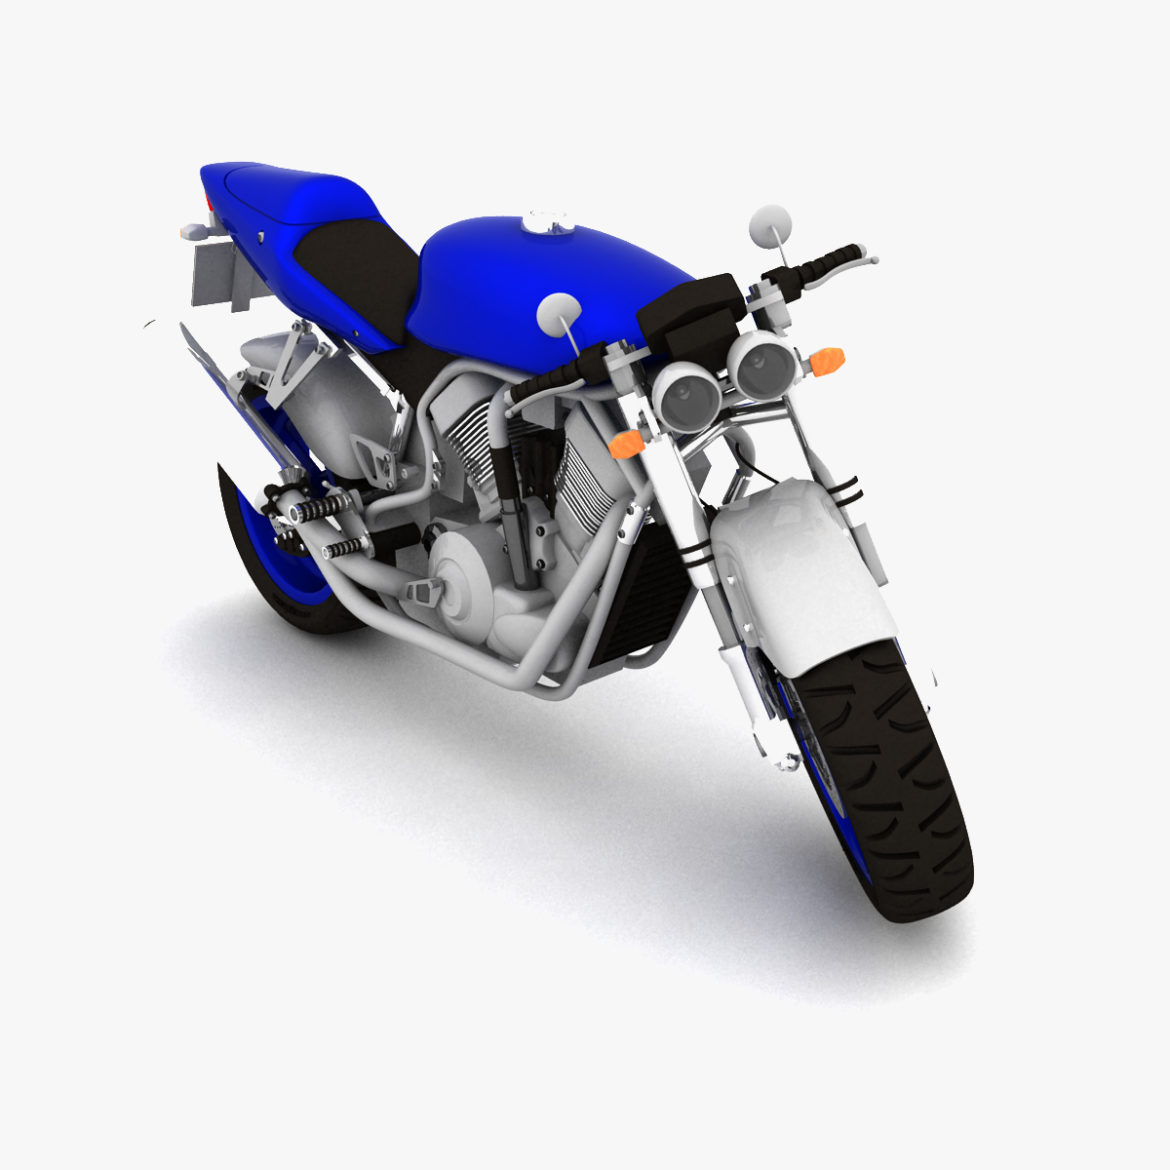 suzuki street fighter motorcycle 3d model 3ds max fbx obj 293869